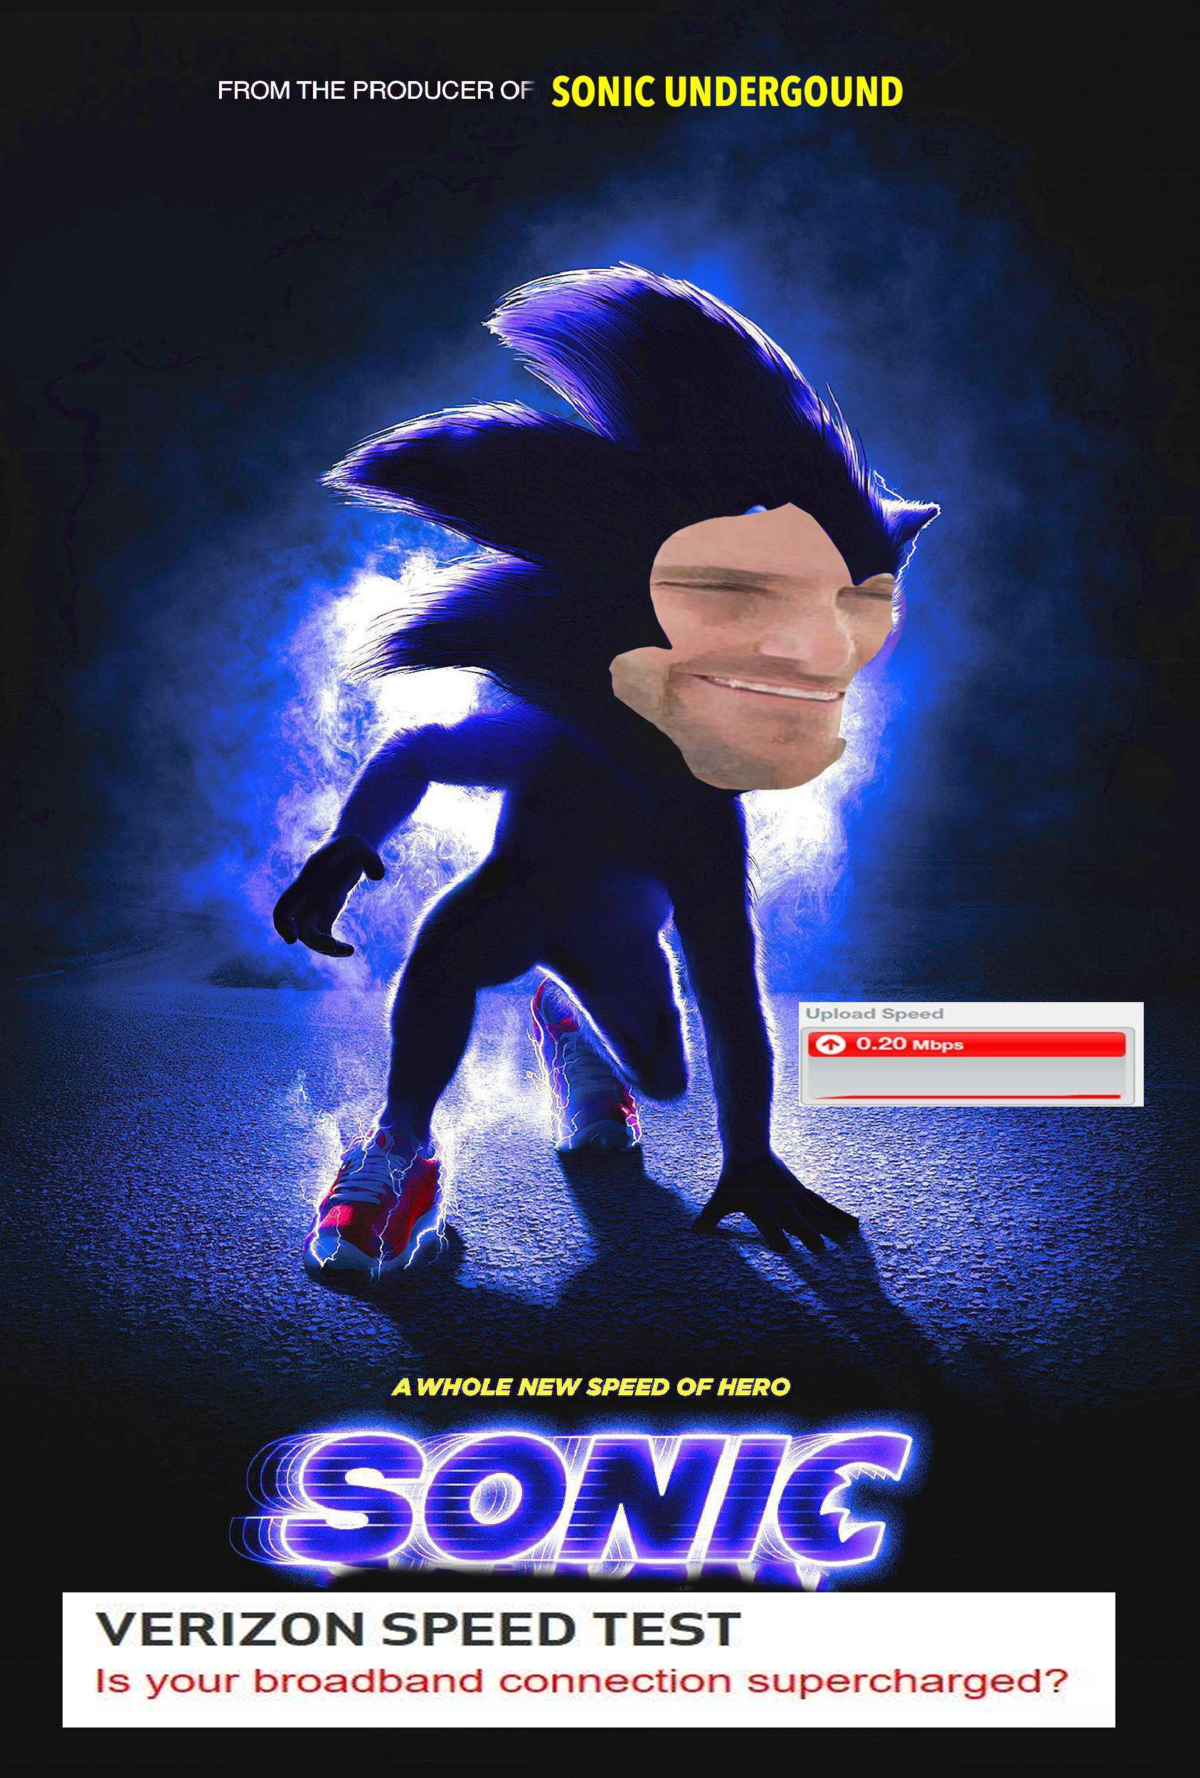 Yes Sonic The Hedgehog Movie Poster Parodies Know Your Meme